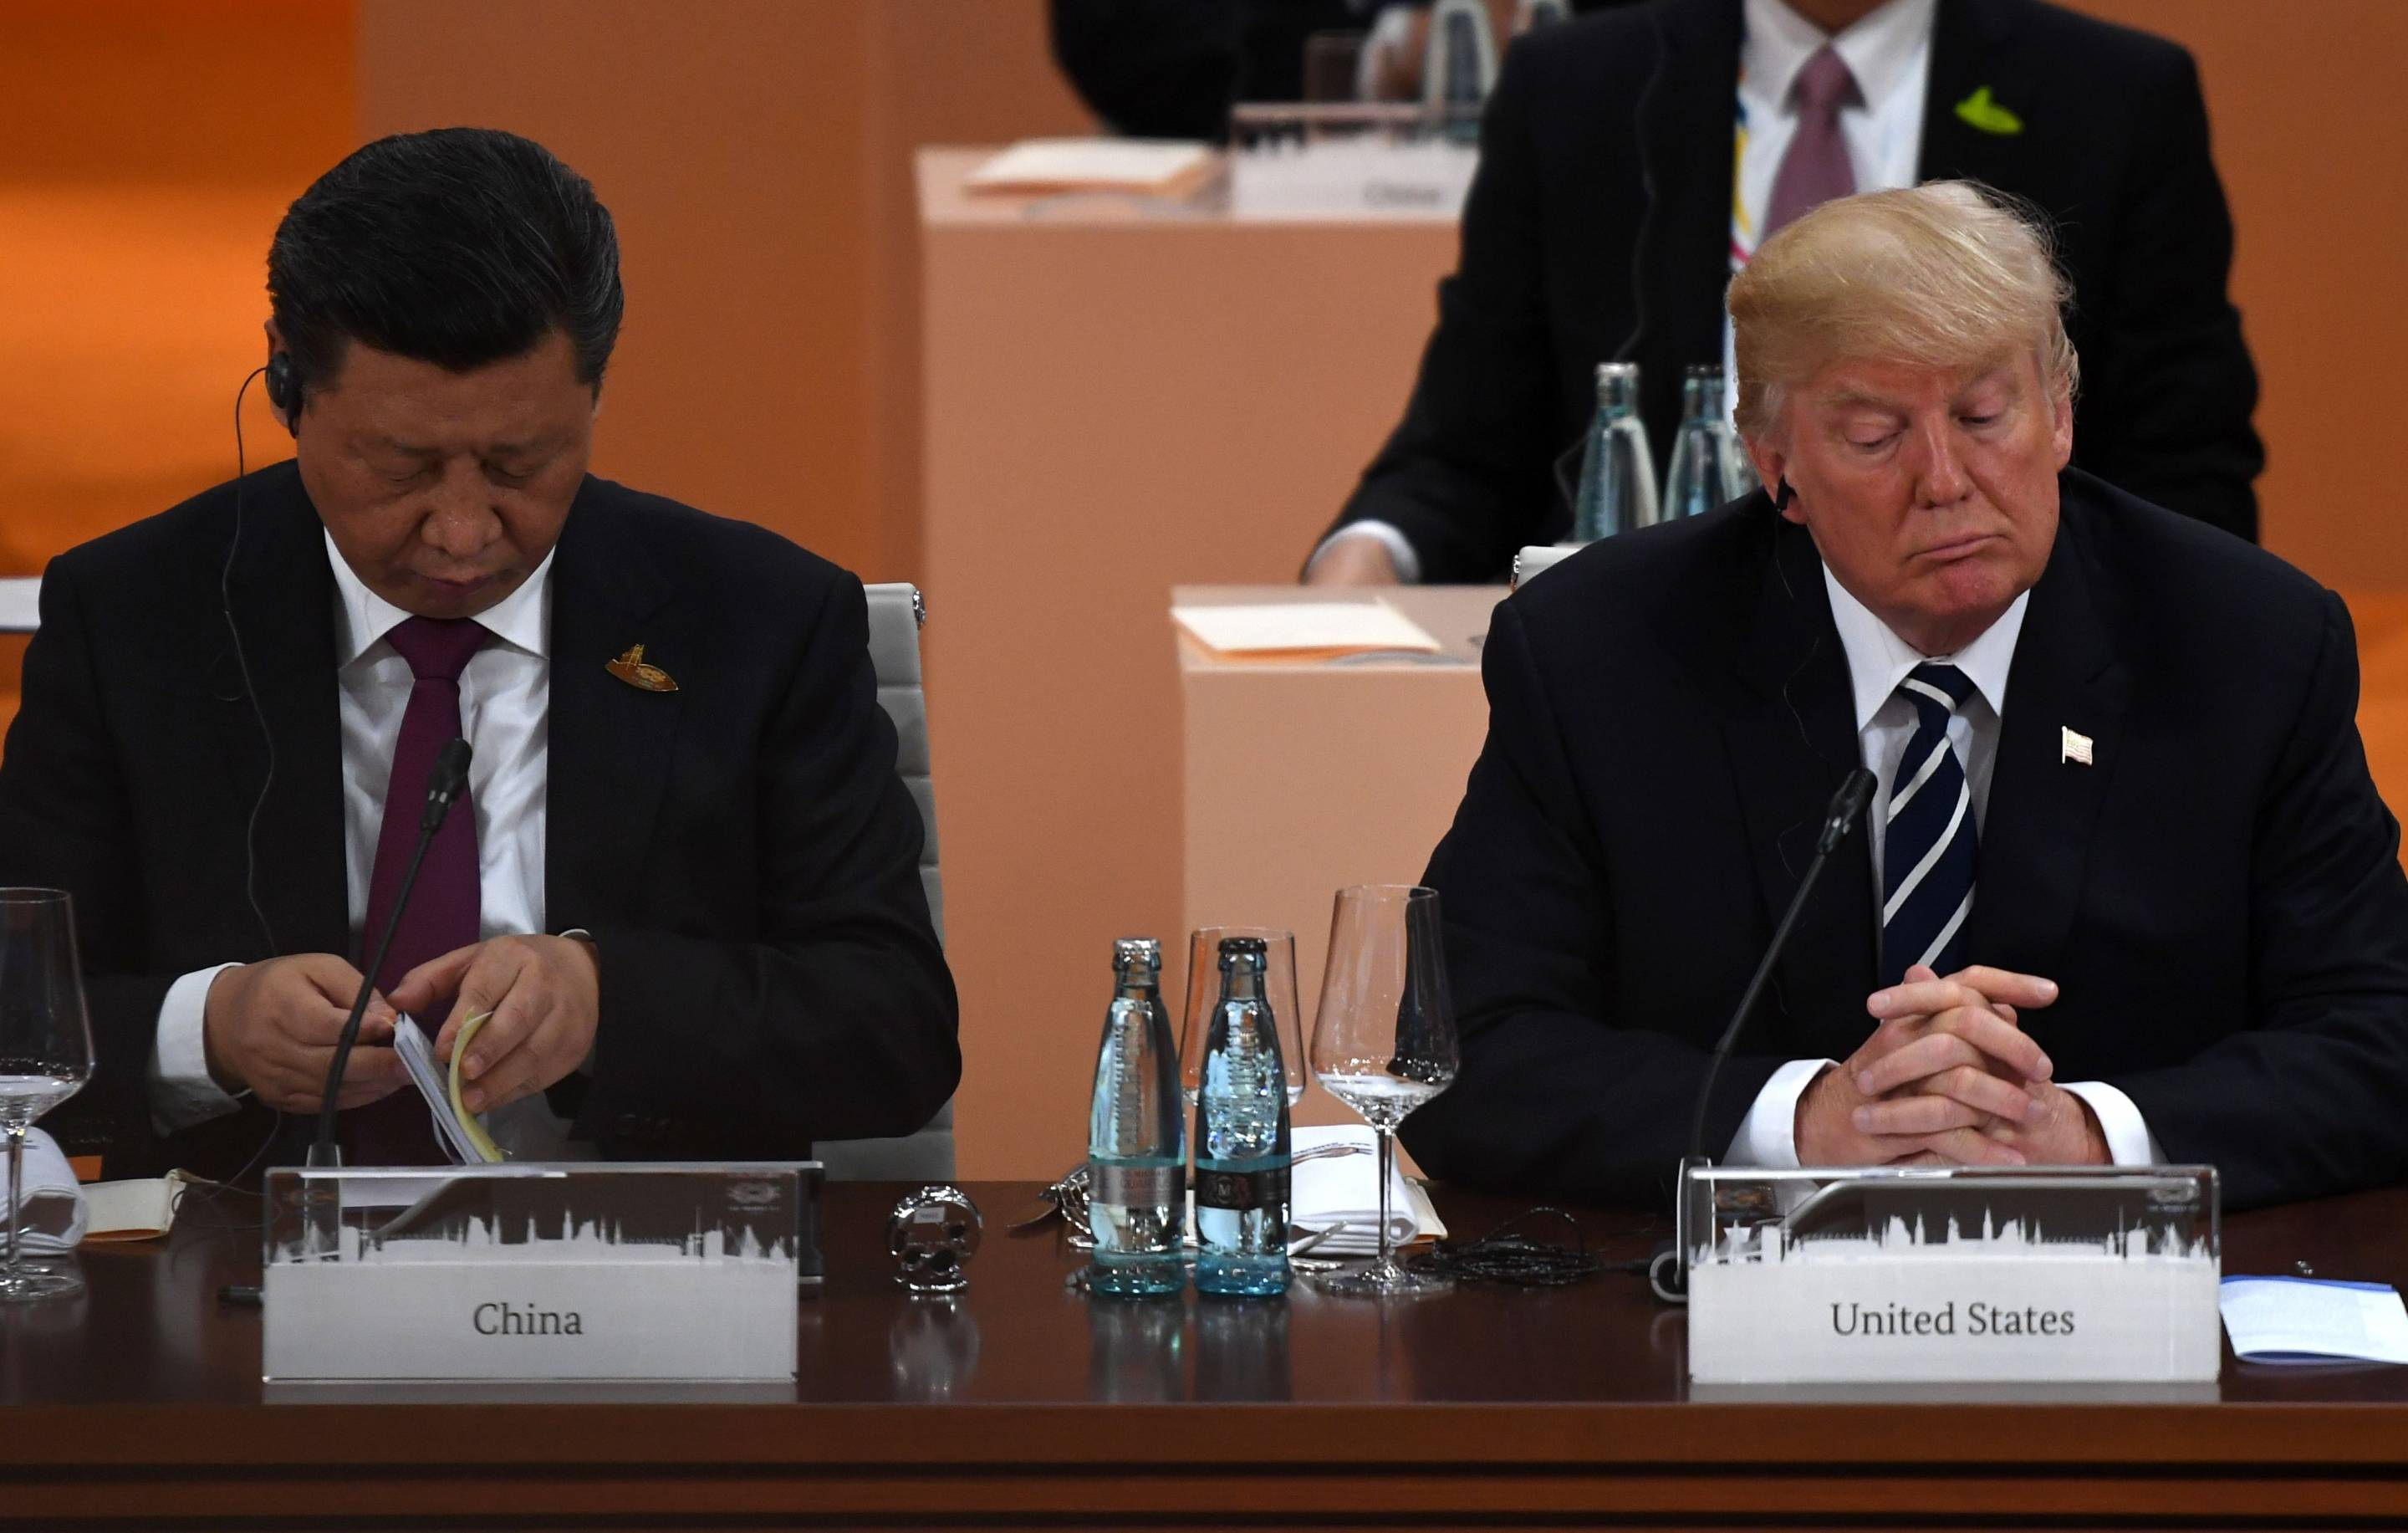 China's President Xi Jinping (L) and U.S. President Donald Trump at the G20 summit in Hamburg, Germany, on July 7, 2017